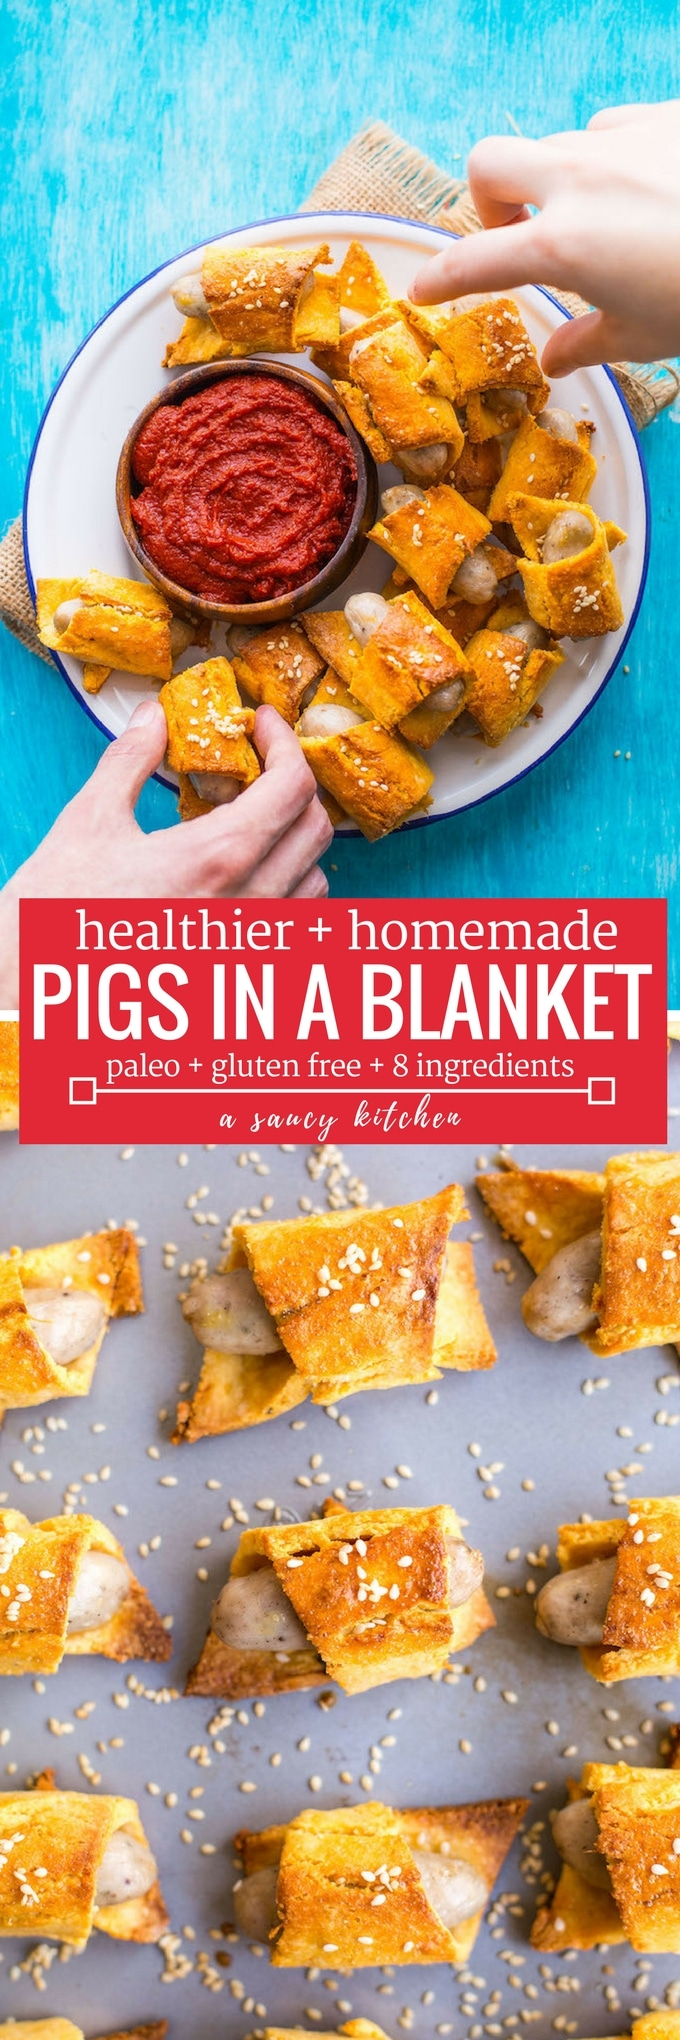 homemade pigs in a blanket pinterest graphic